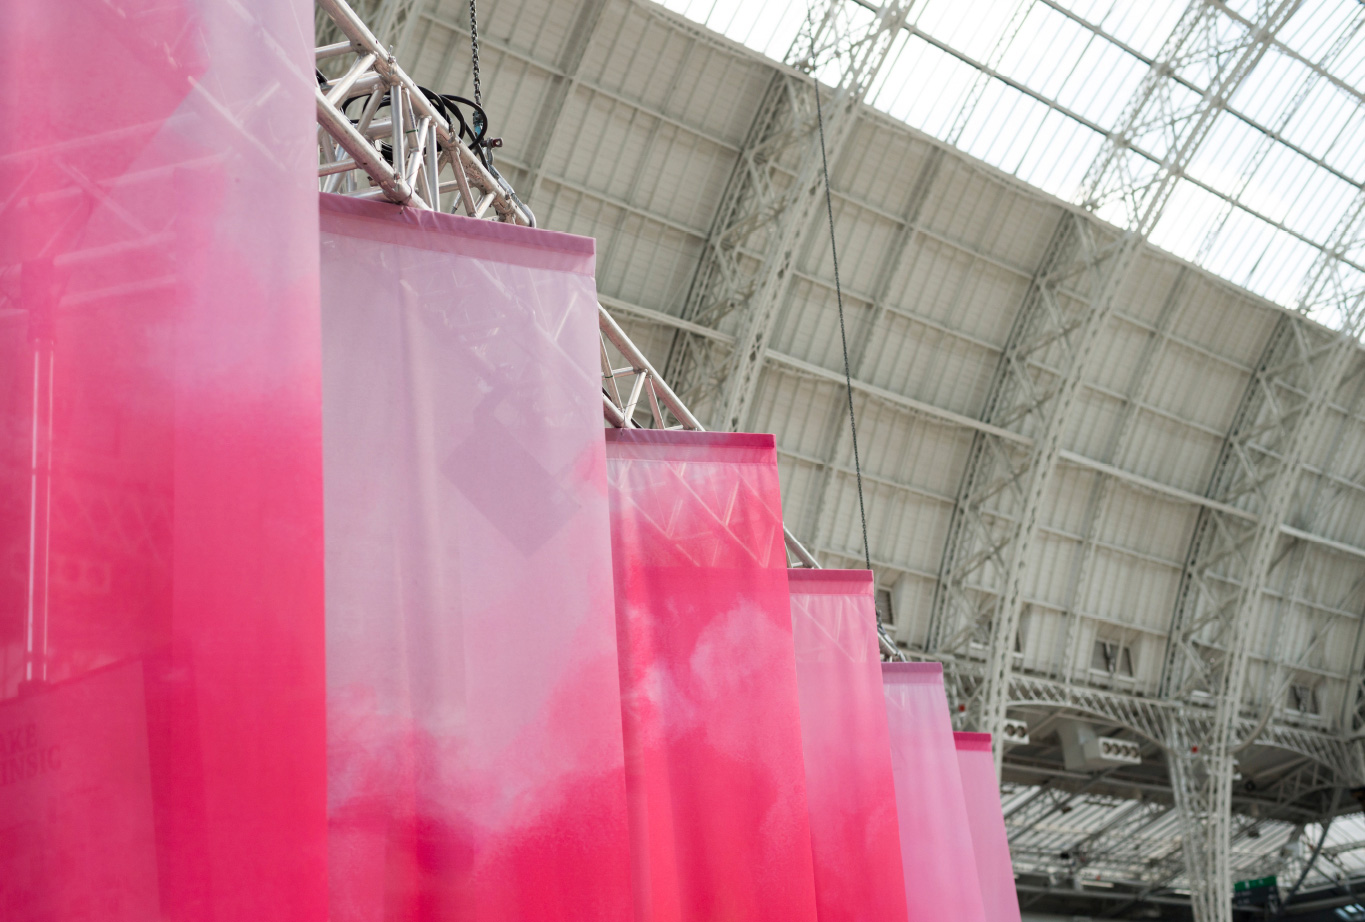 4m high printed drapes enclose the ShopTalk seminar area